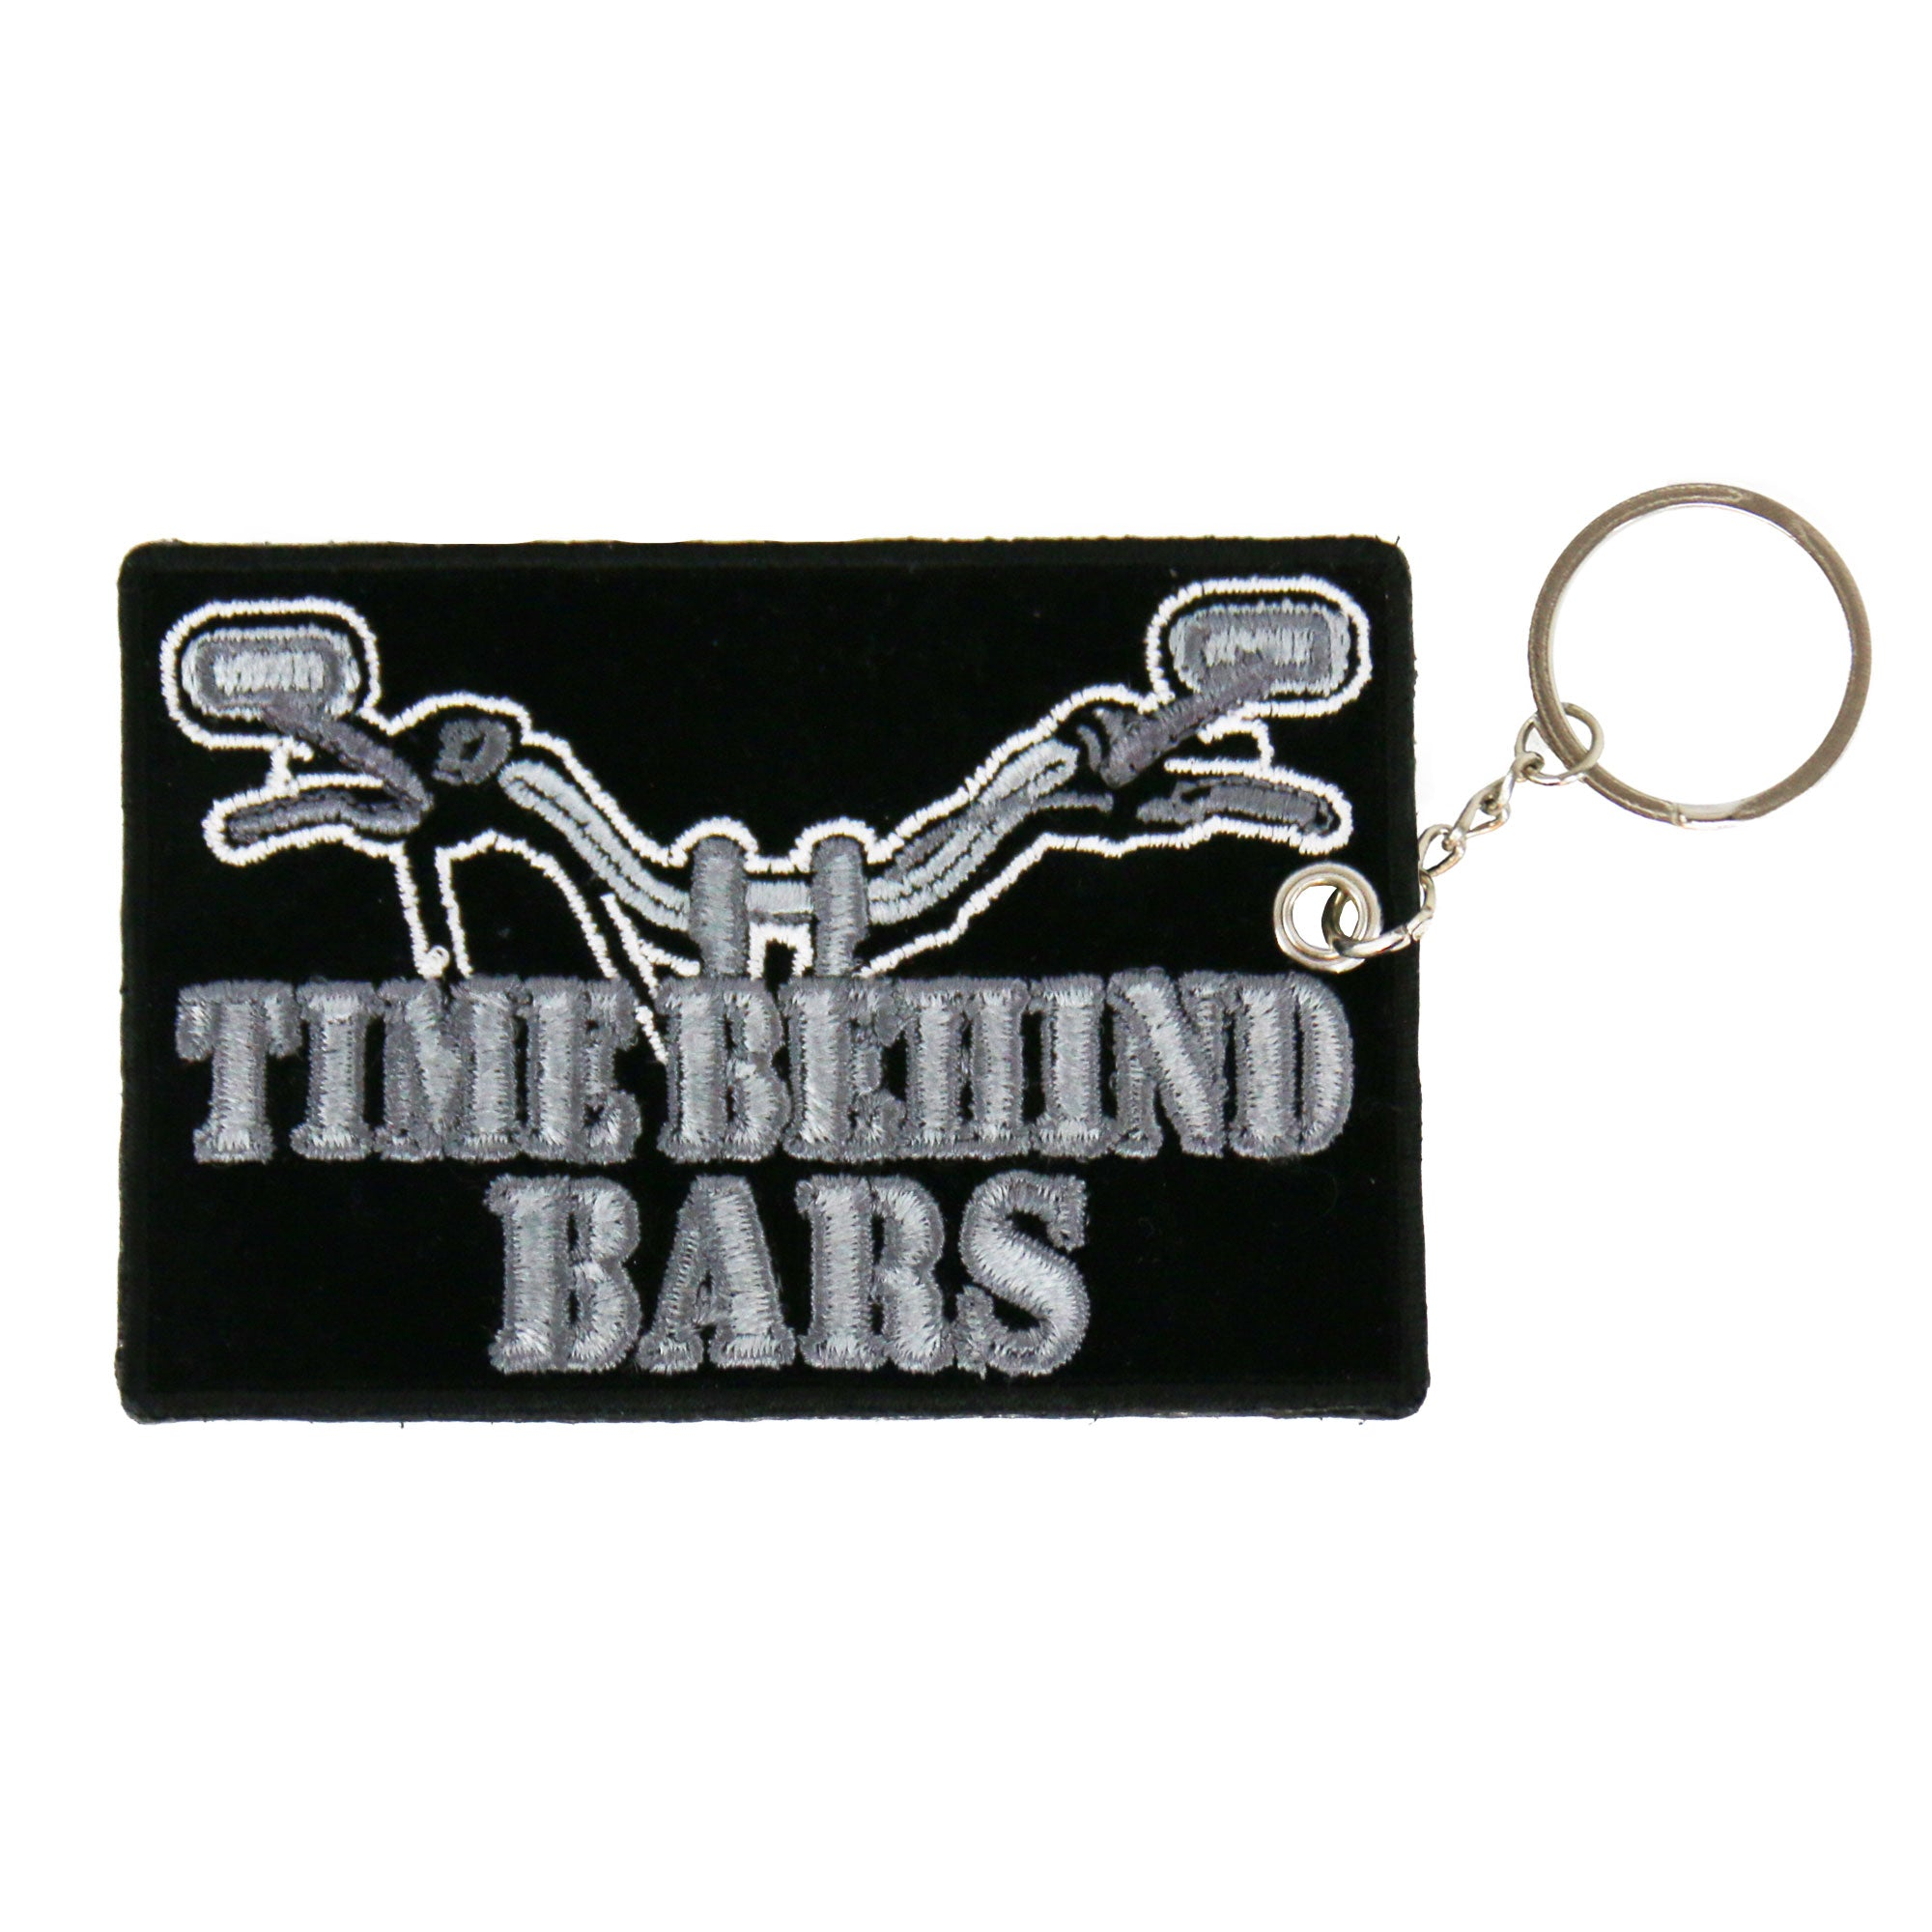 Hot Leathers Time Behind Bars Embroidered Key Chain